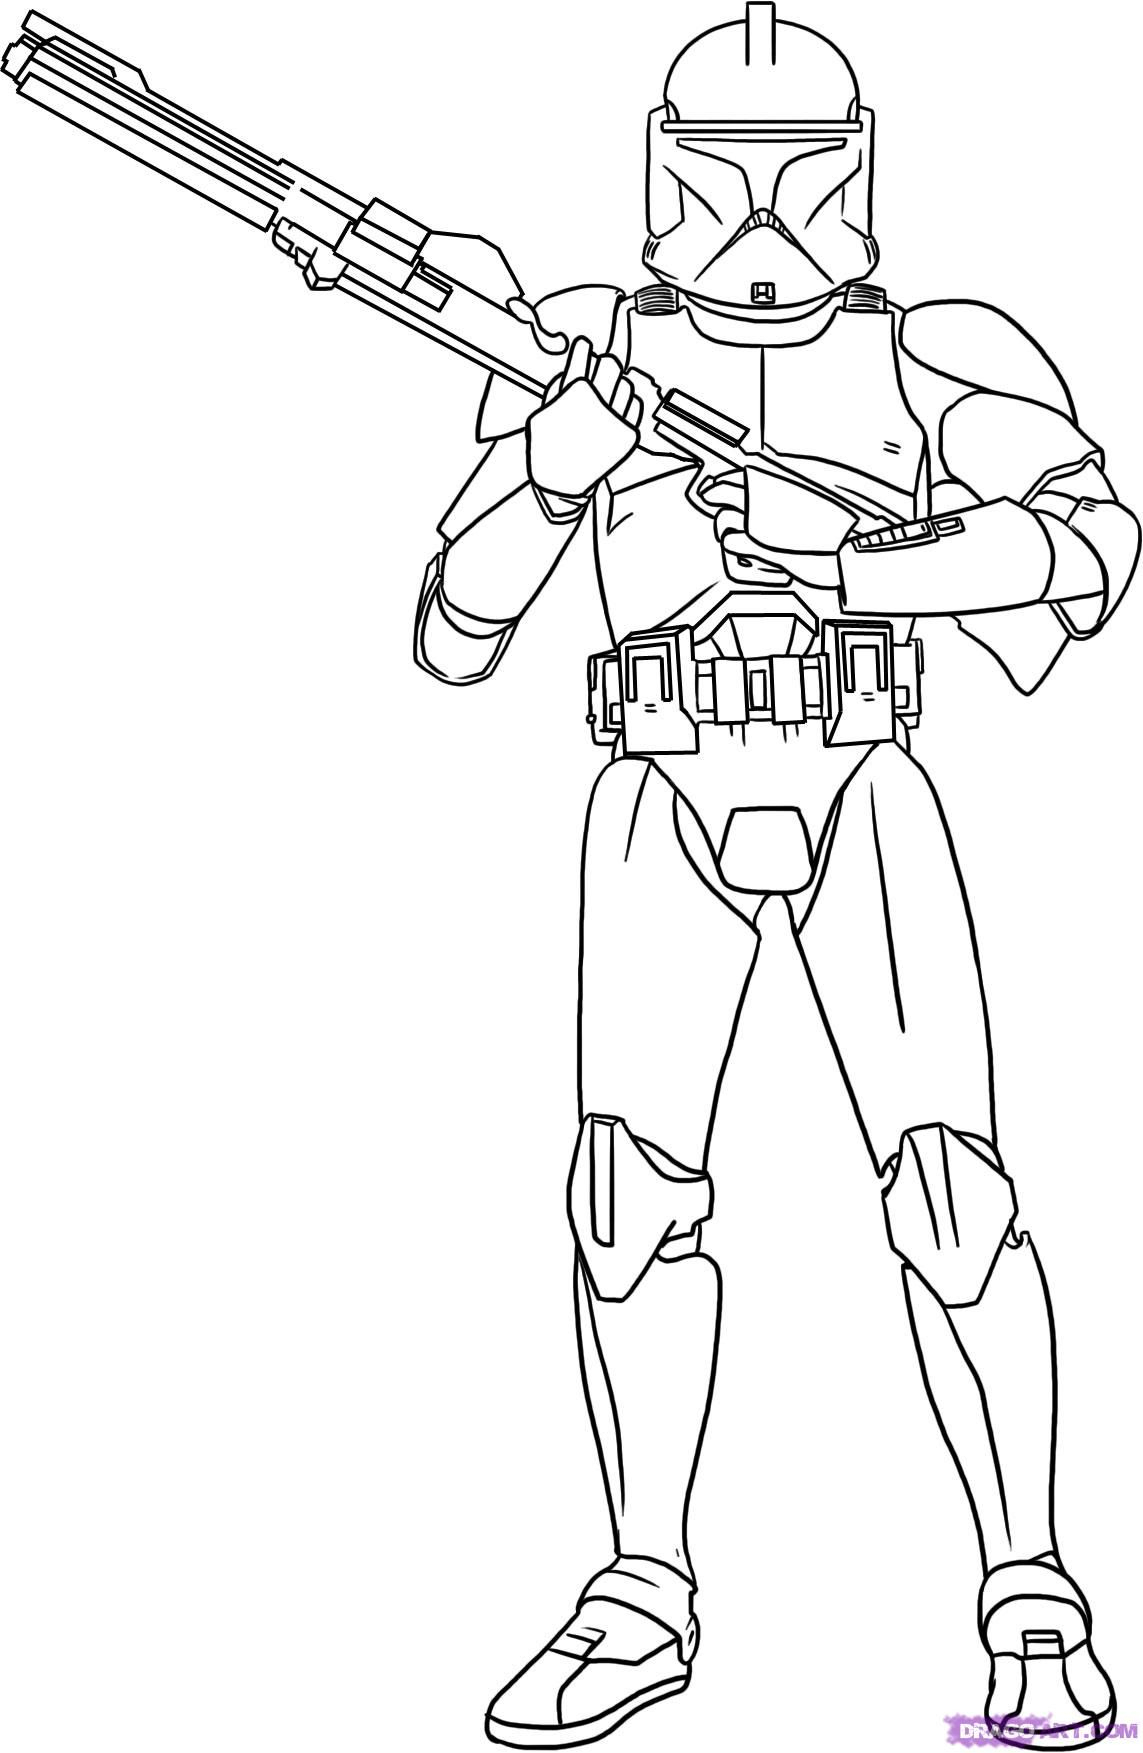 Star Wars Coloring Pages - Free Printable Star Wars Coloring innen Star Wars Ausmalbilder Gratis